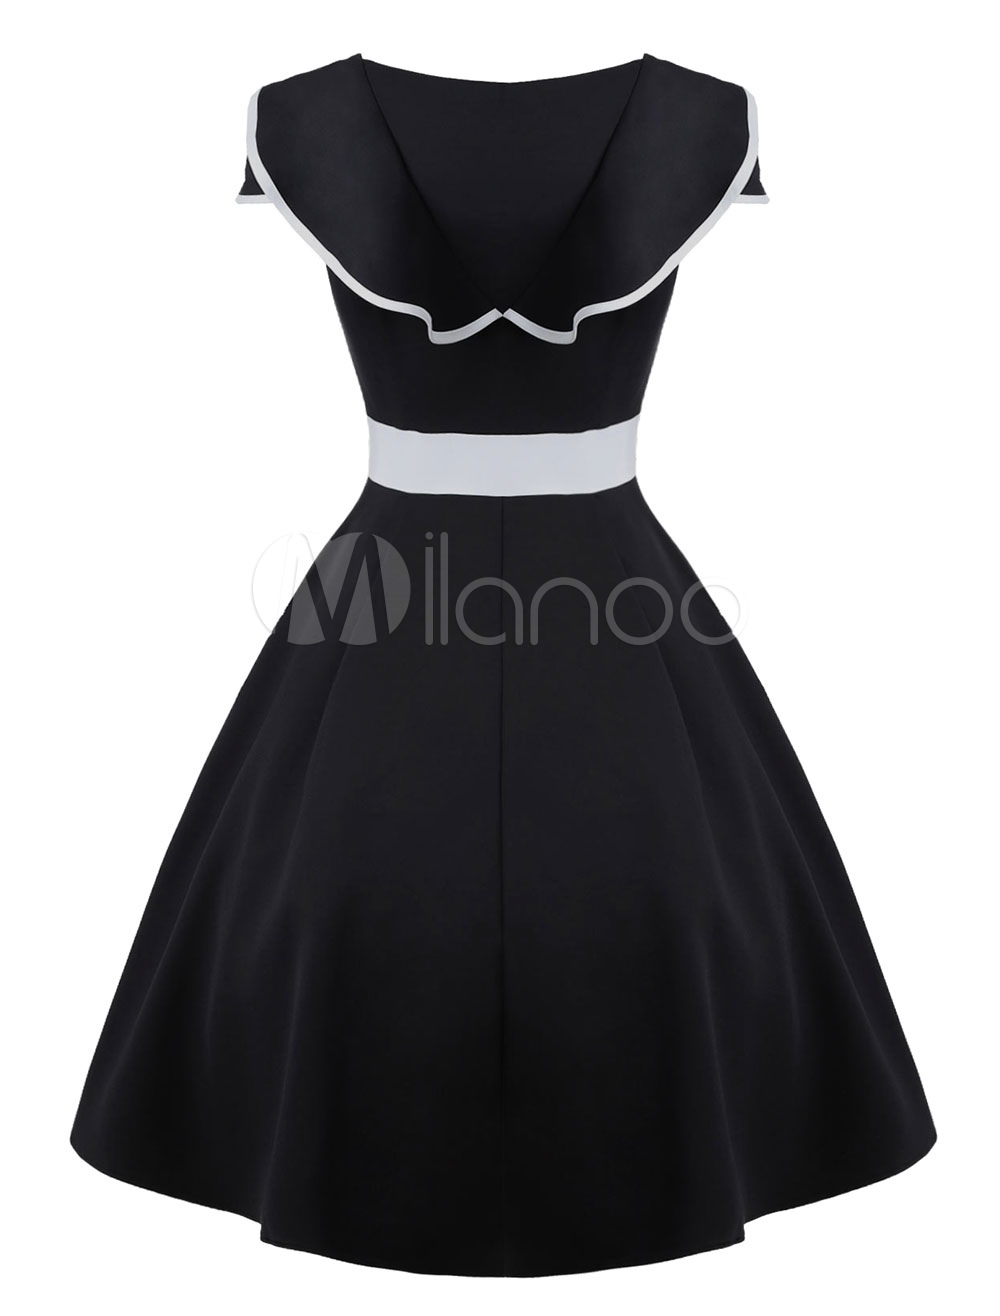 a87dfe531a3da4 Black Vintage Dress Round Neck Sleeveless Ruffles Two Tone Women's ...